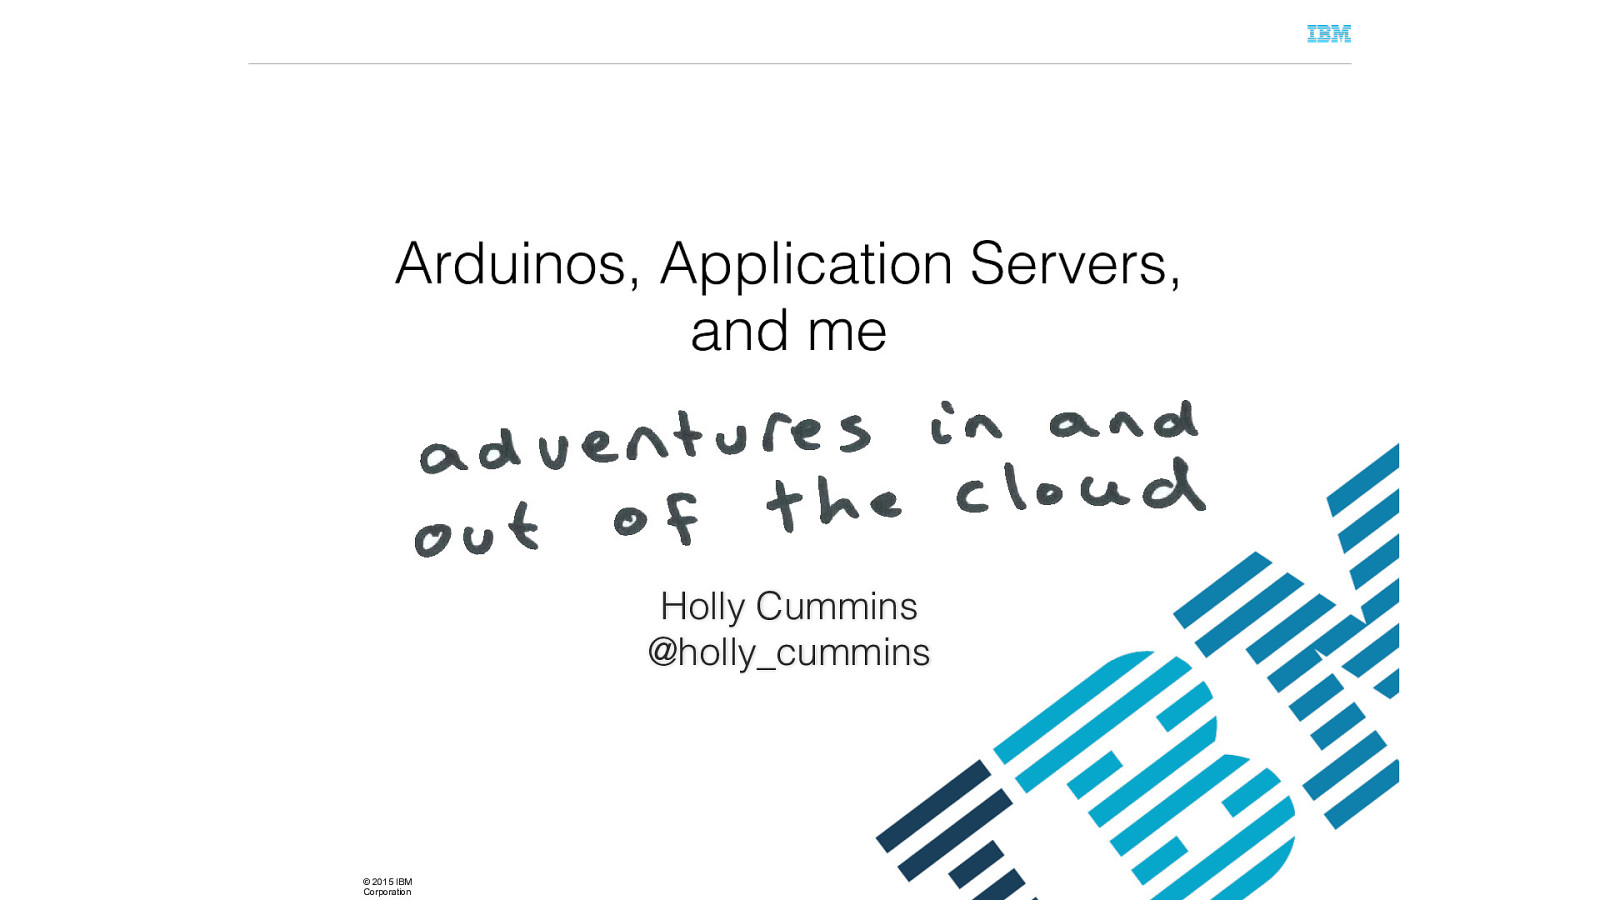 An Arduino, an Application, Server, and me - Adventures In and Out of the Cloud by Holly Cummins